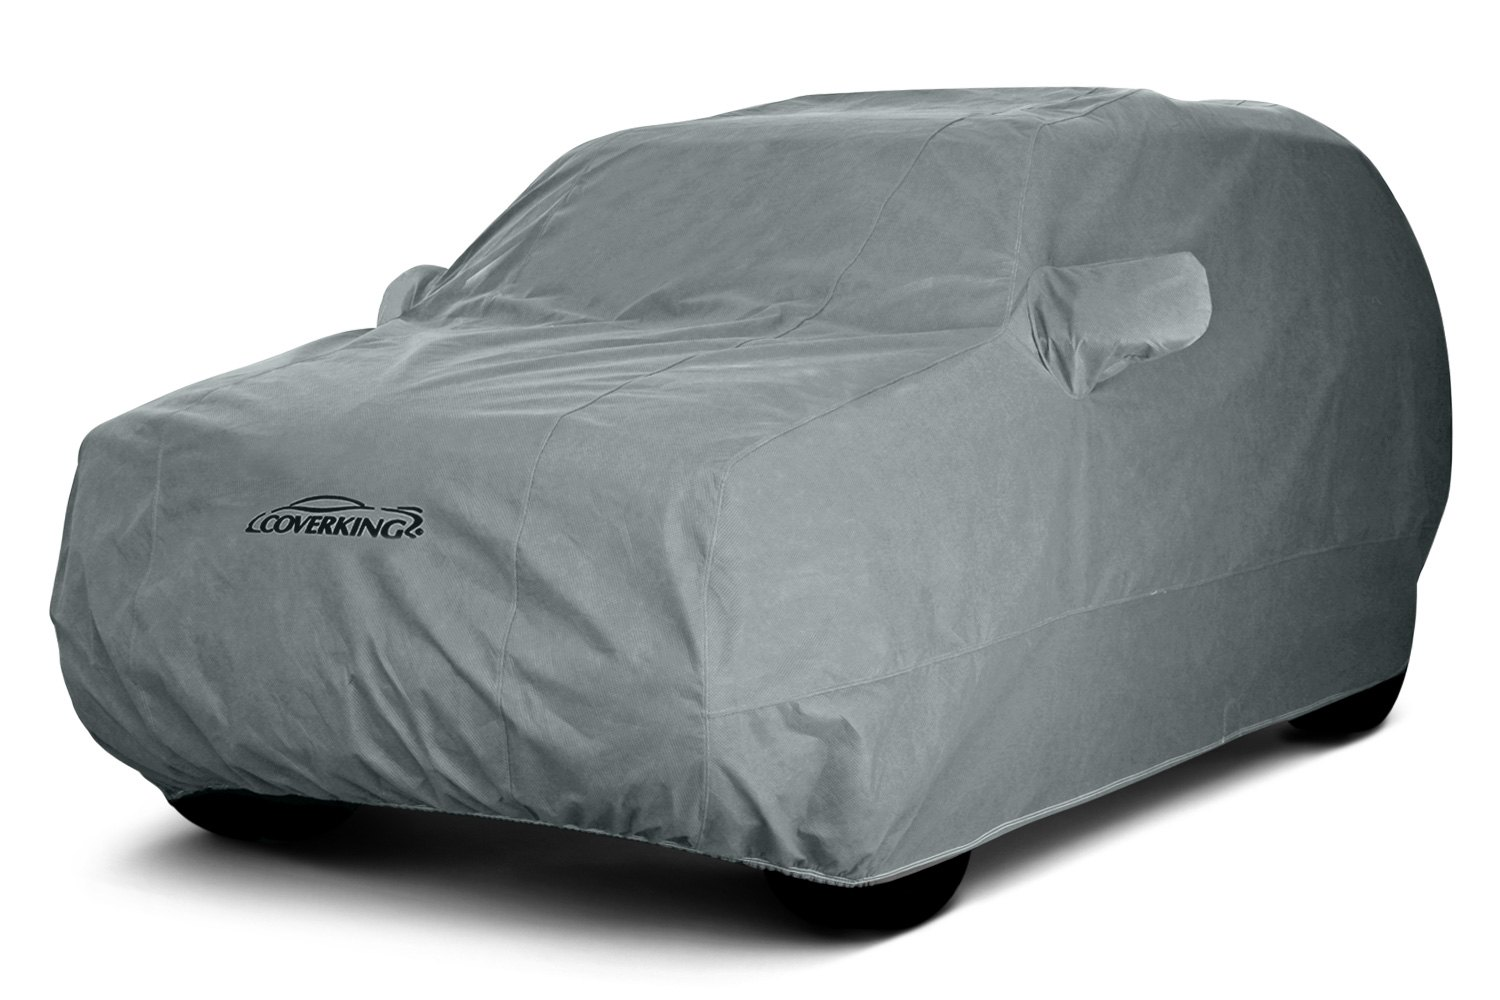 Honda Pilot Car Covers >> Coverking Triguard Gray Custom Car Cover